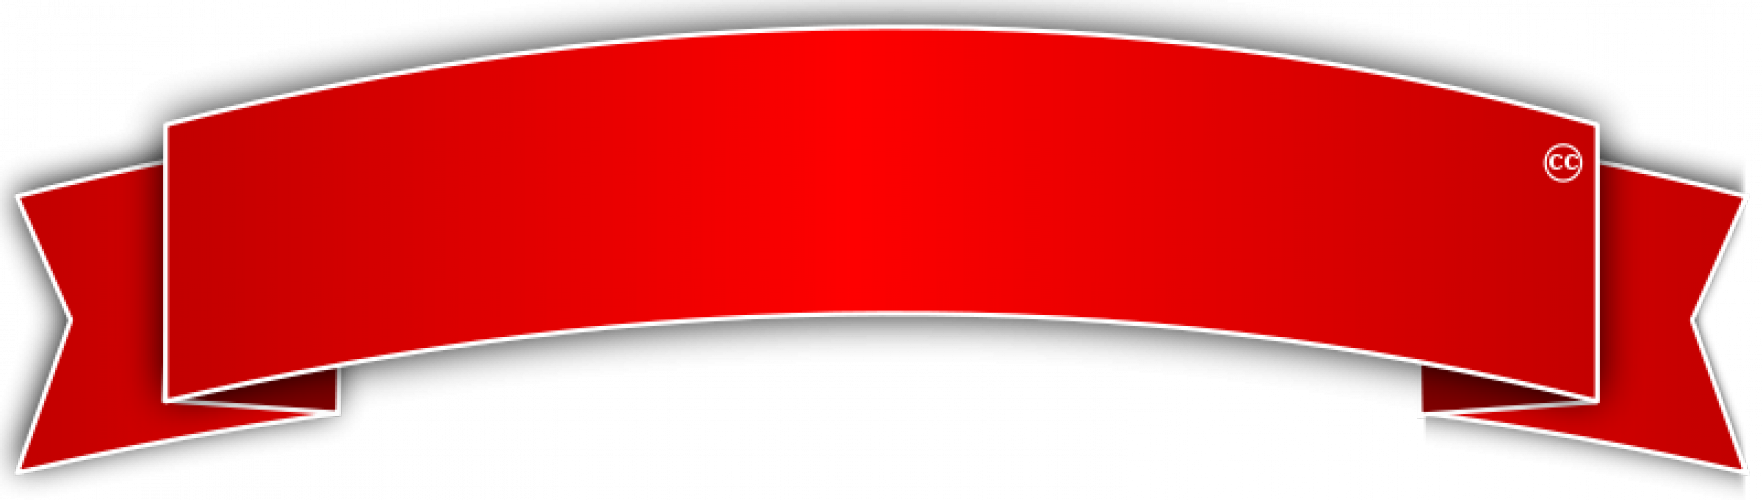 Ribbon banner vector png. Collection of red